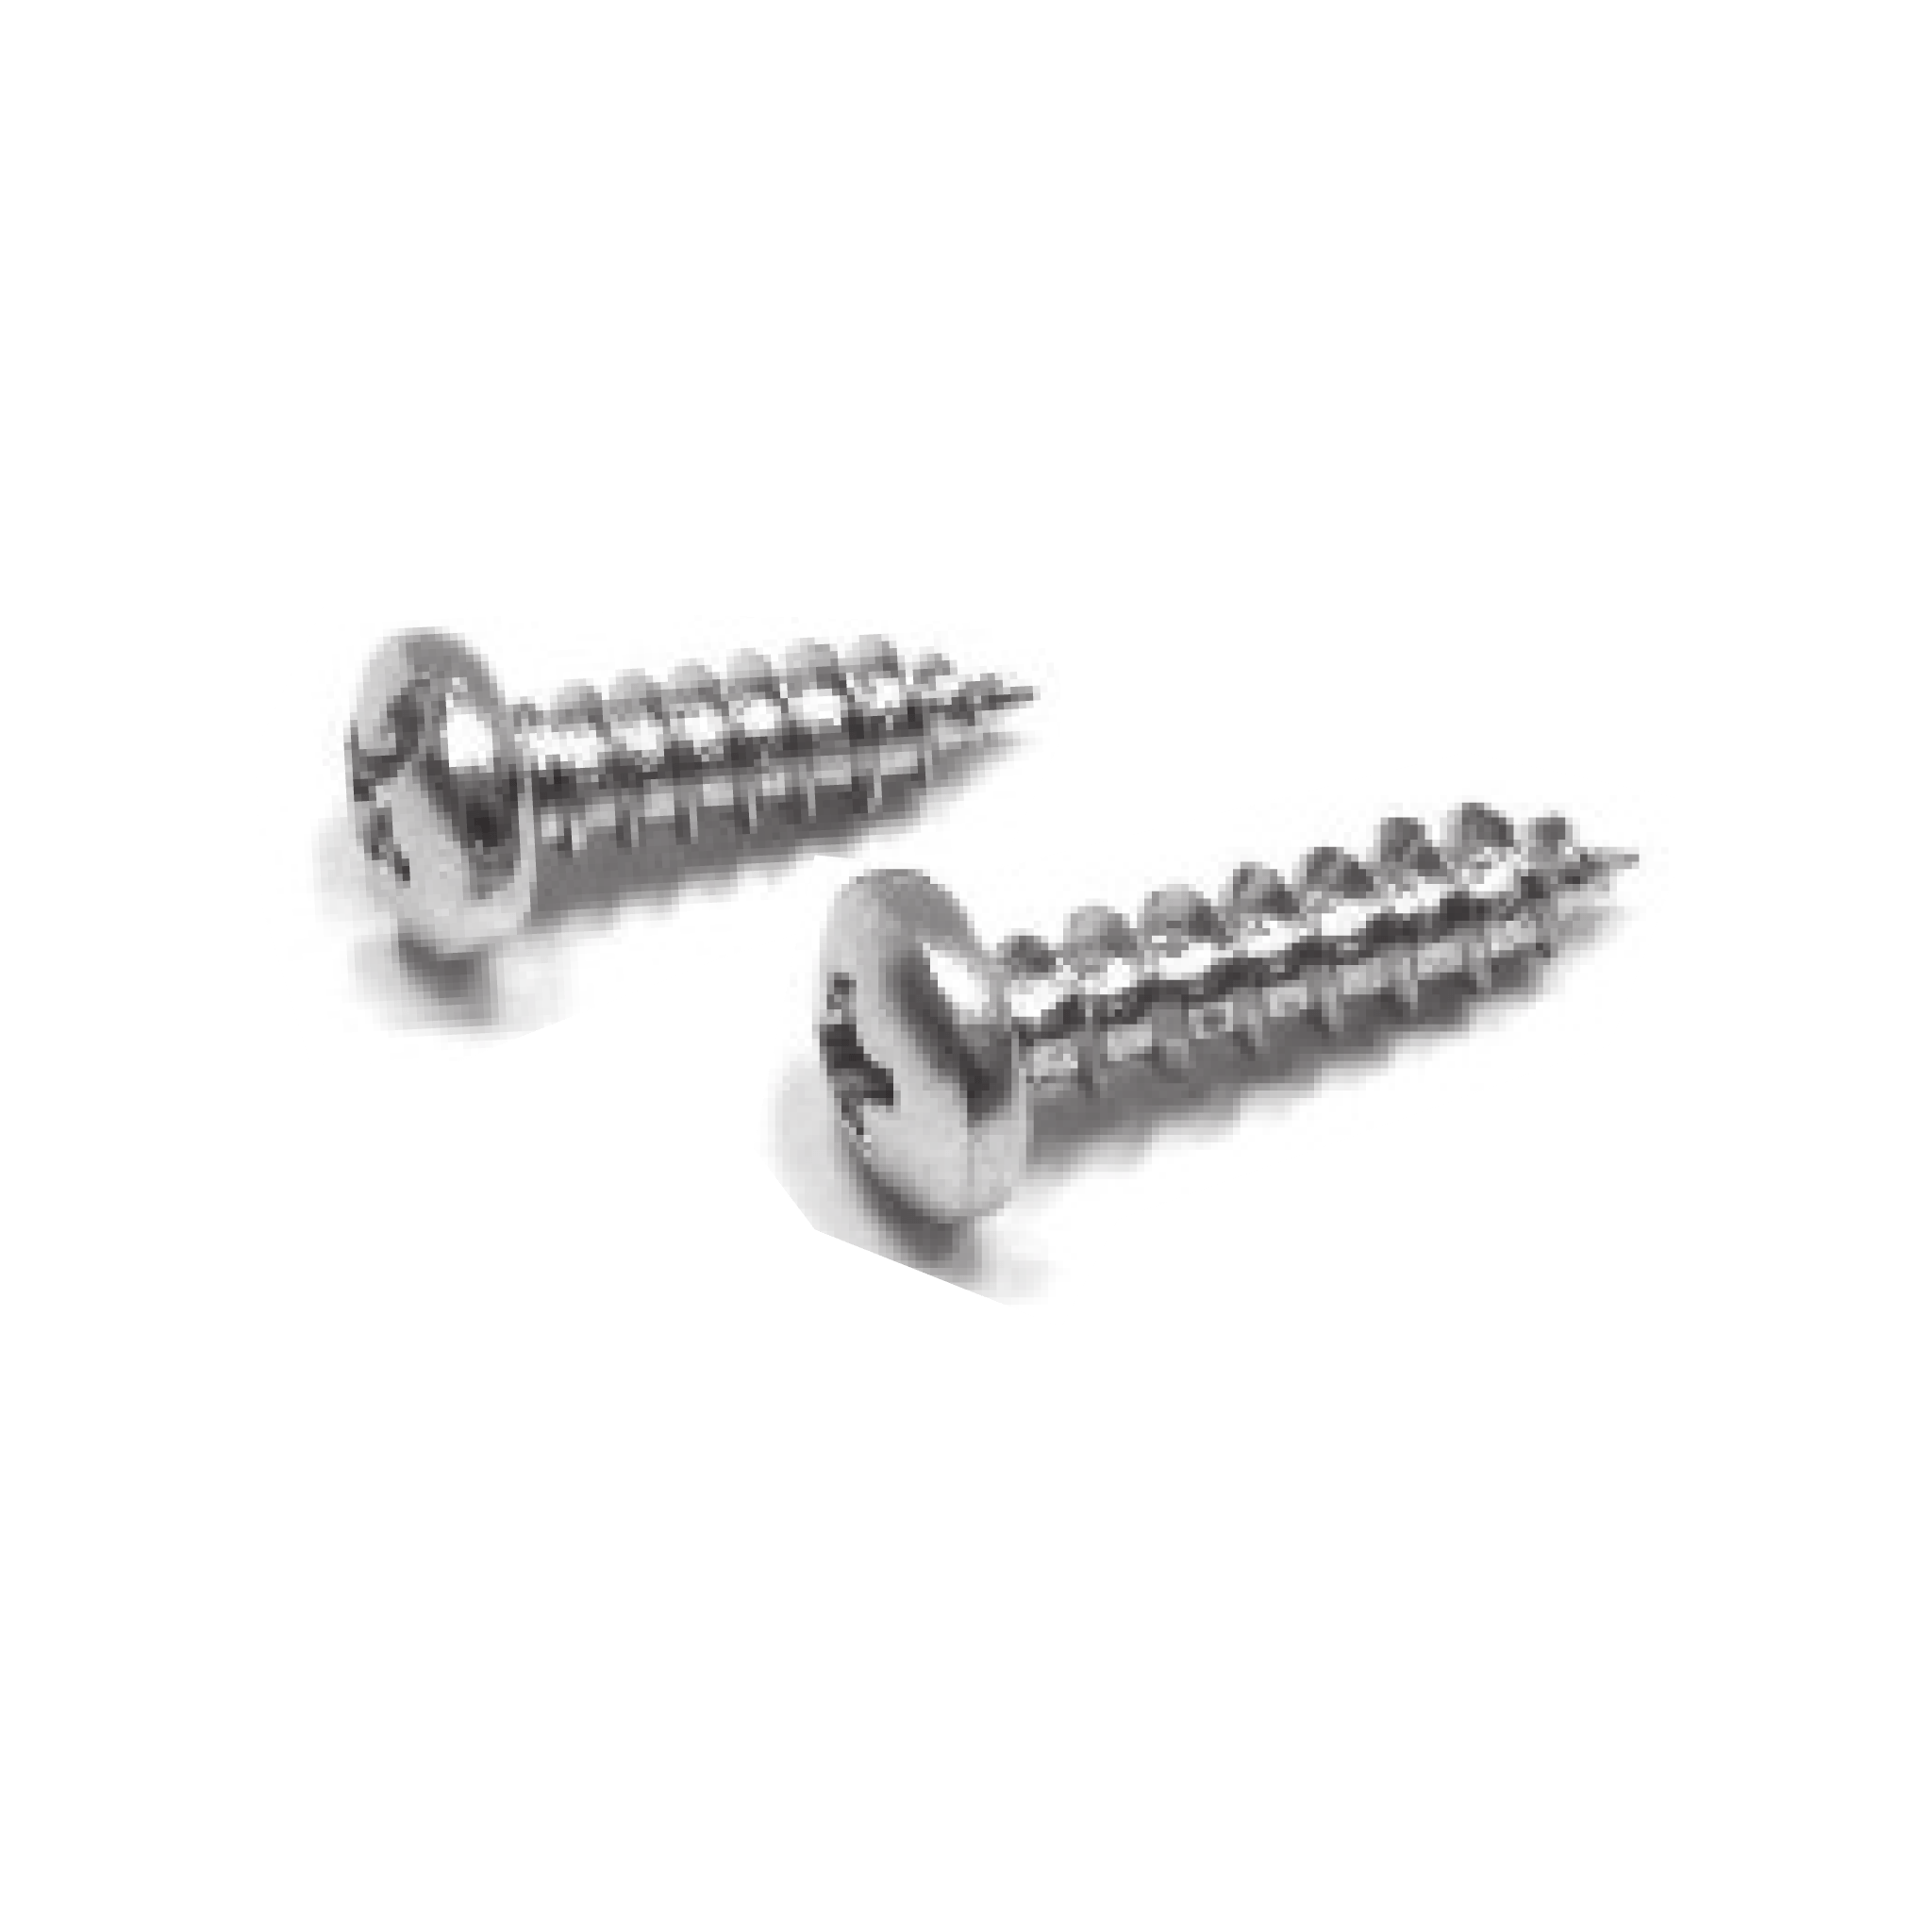 "#6 x 3/8"" Pan Head Sheet Metal Screw - pack of 100"